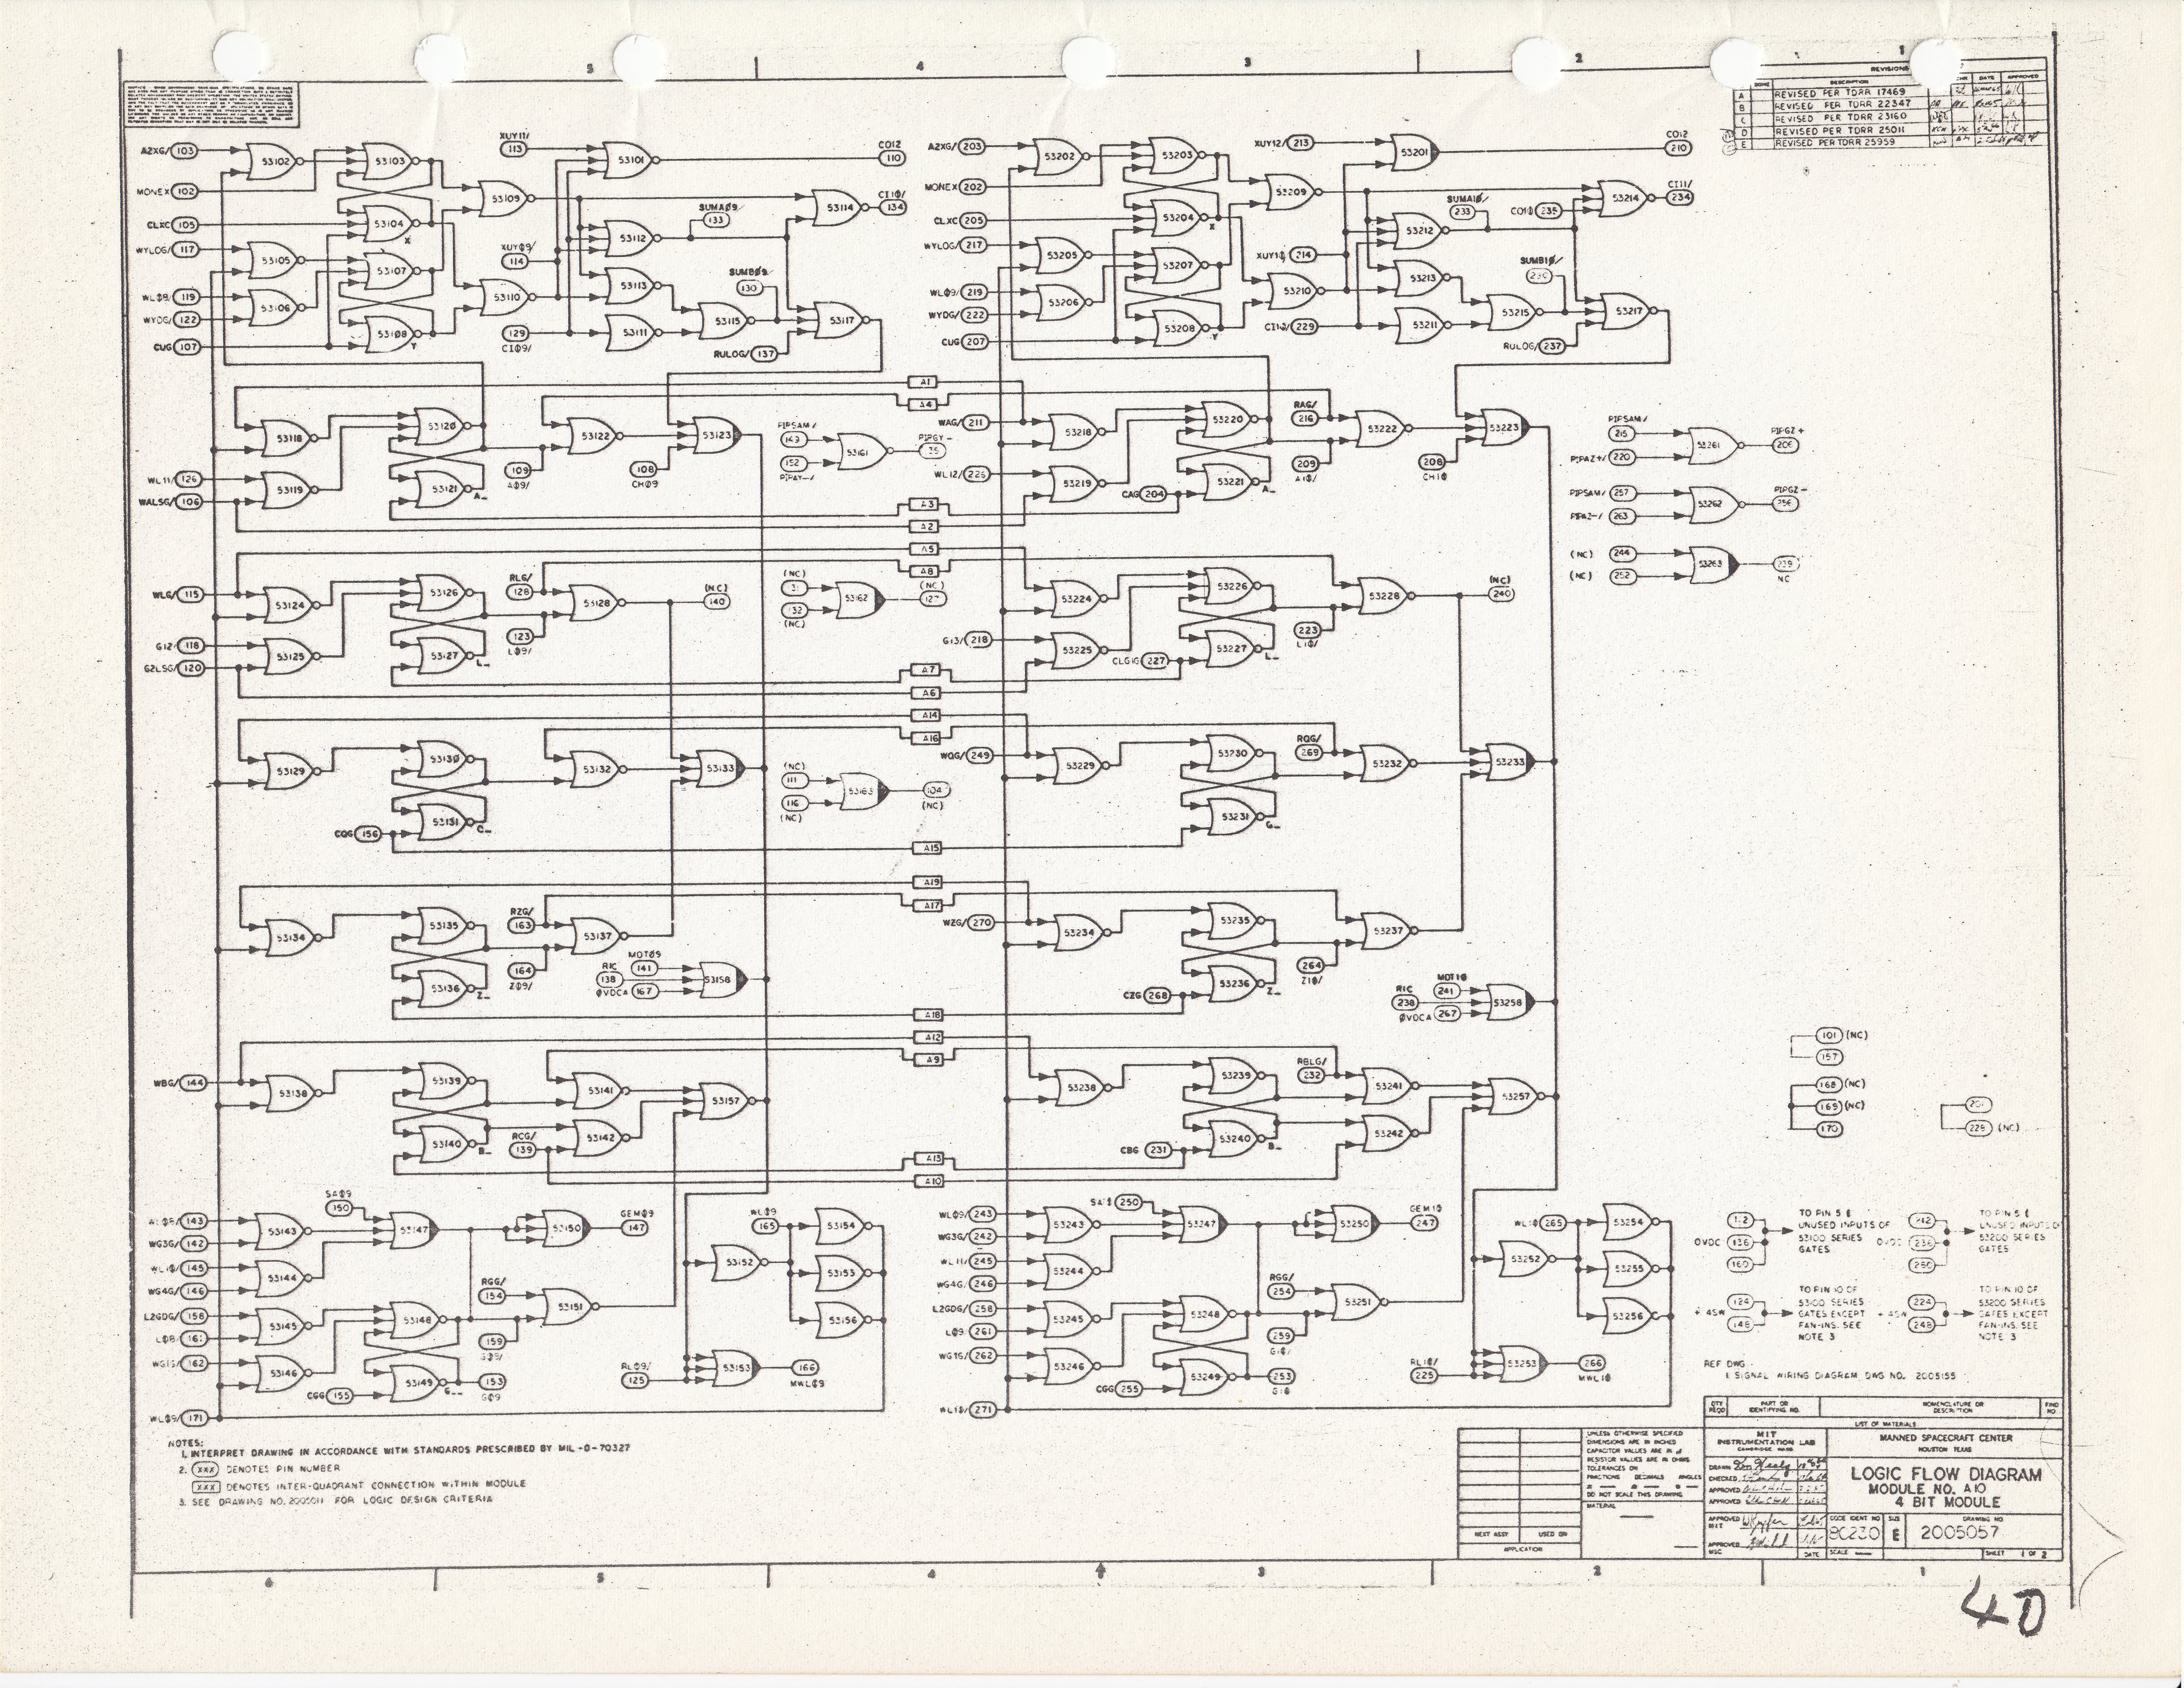 Virtual Agc Electrical Mechanical Page Of Fortune Circuit Diagram Electronic Diagrams Schematics 2005057e